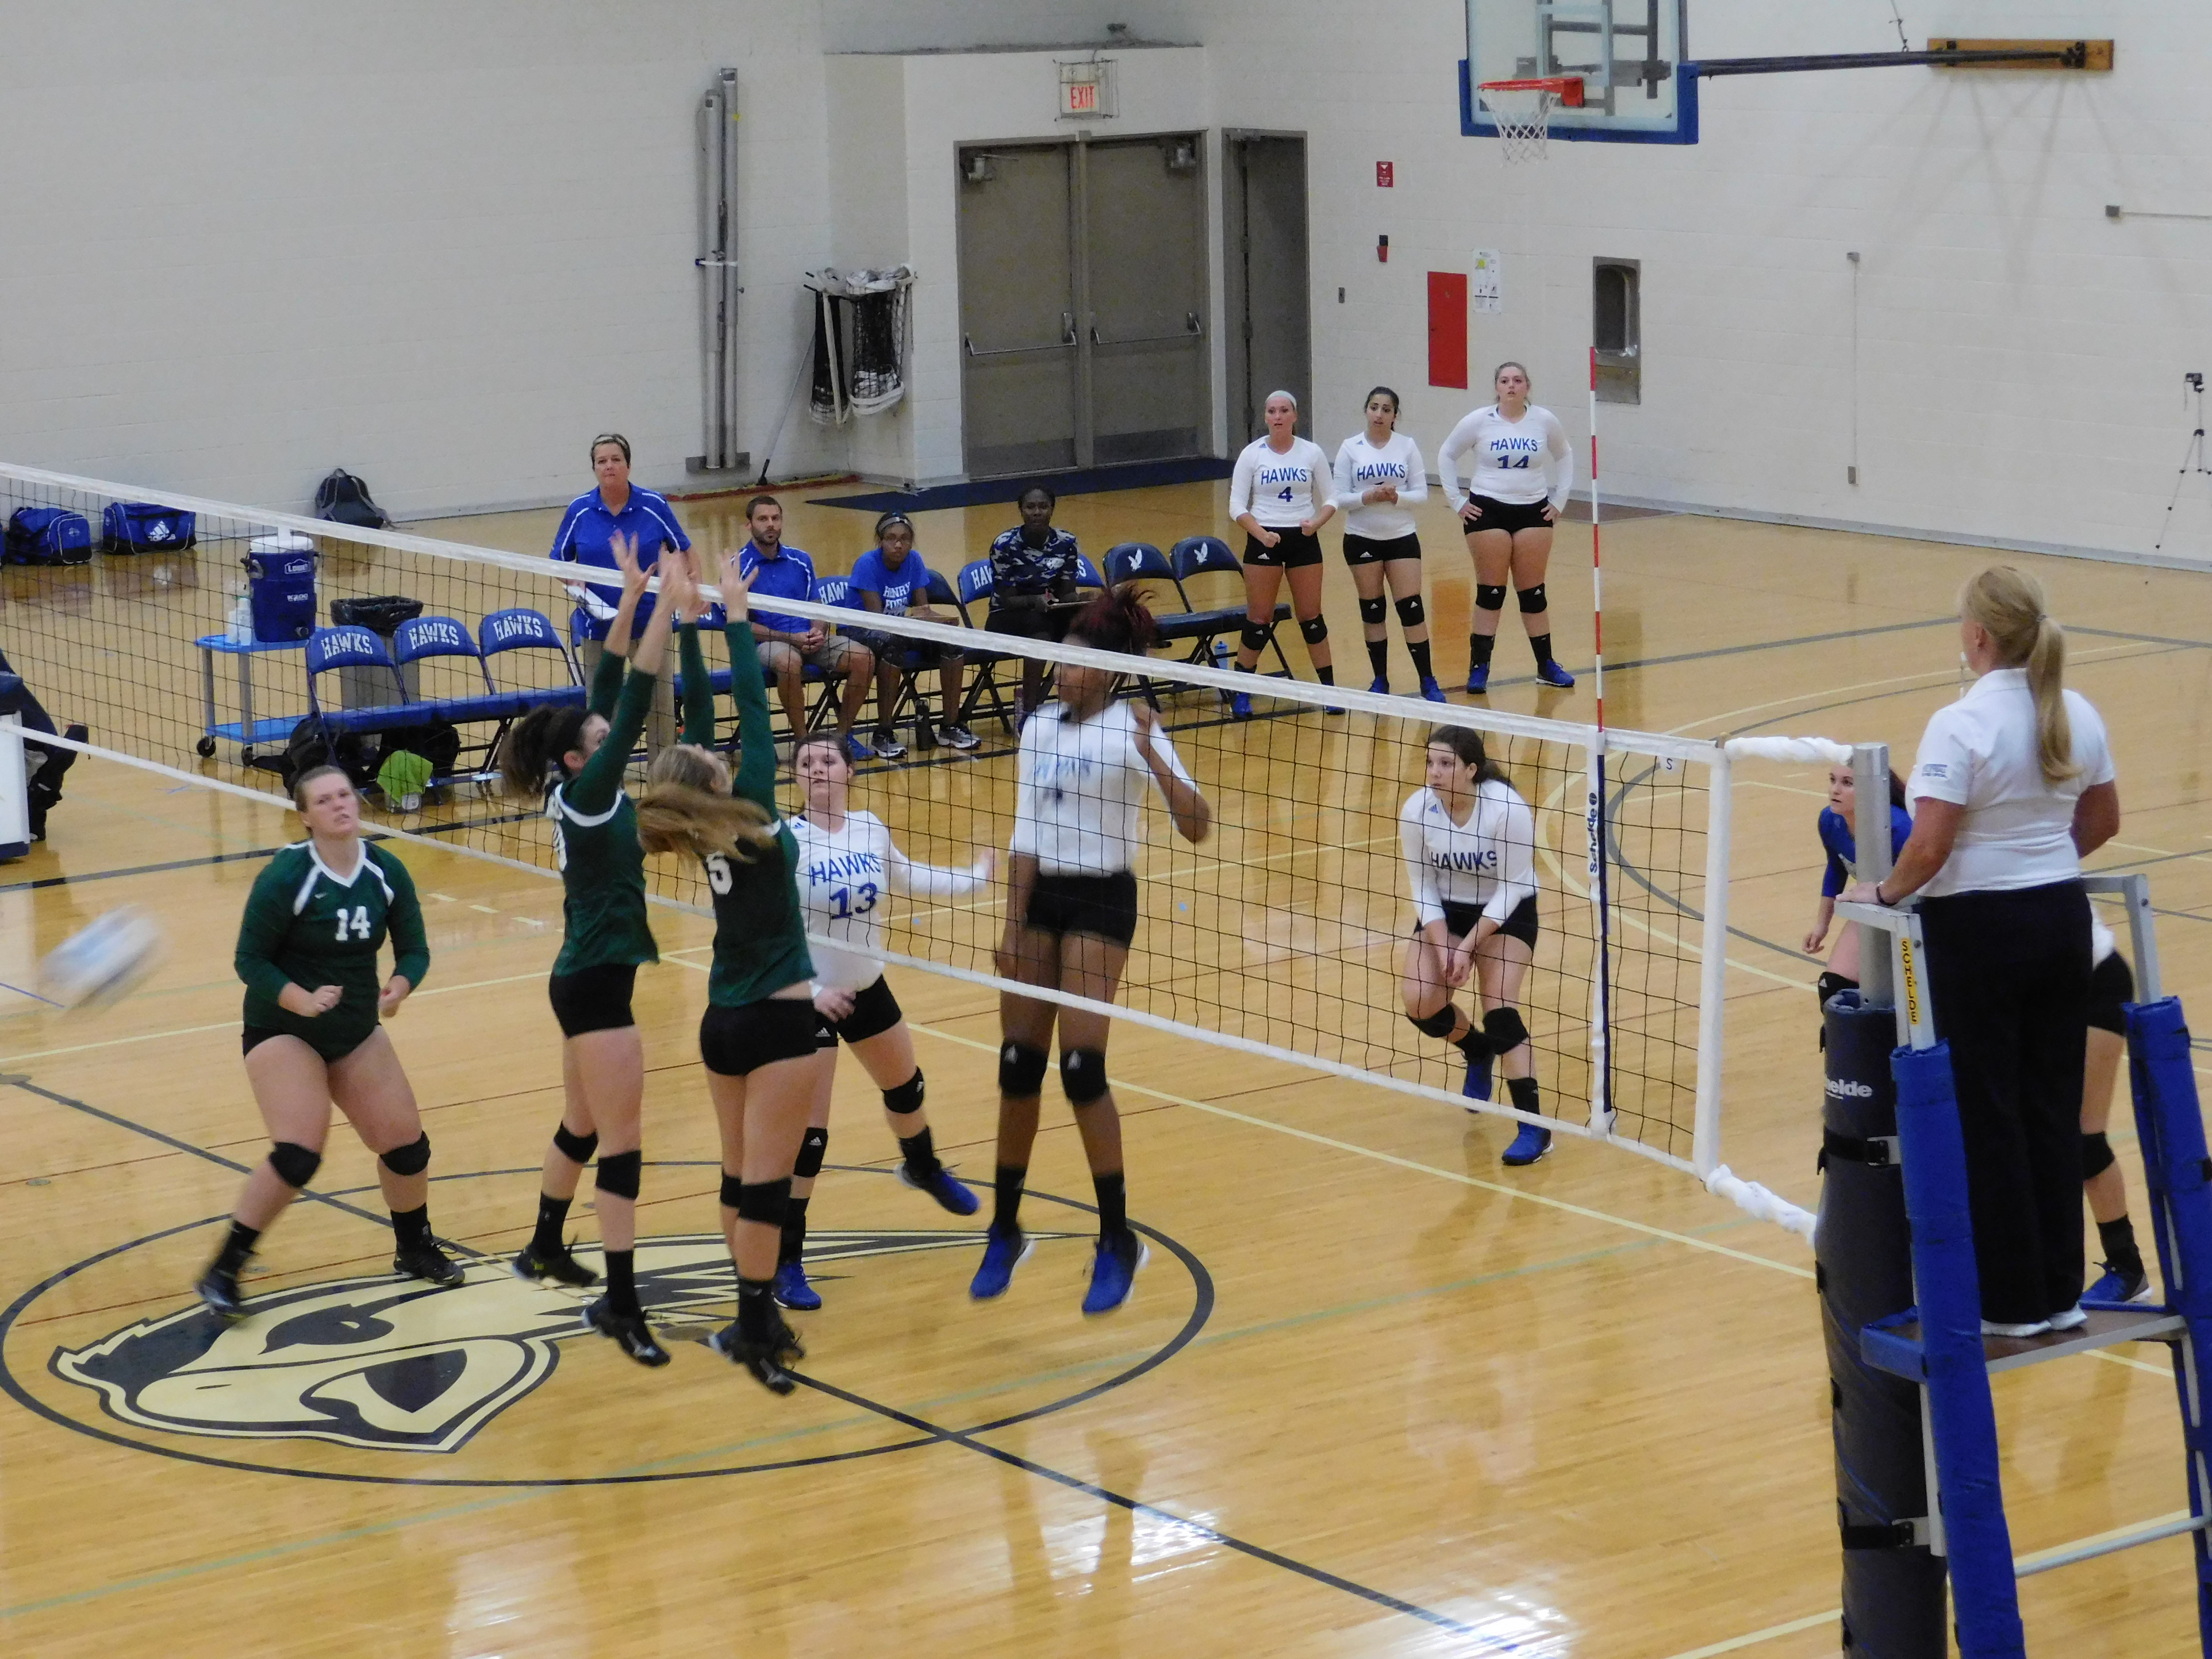 Hawks girls volleyball team at the net getting ready to block a spike.